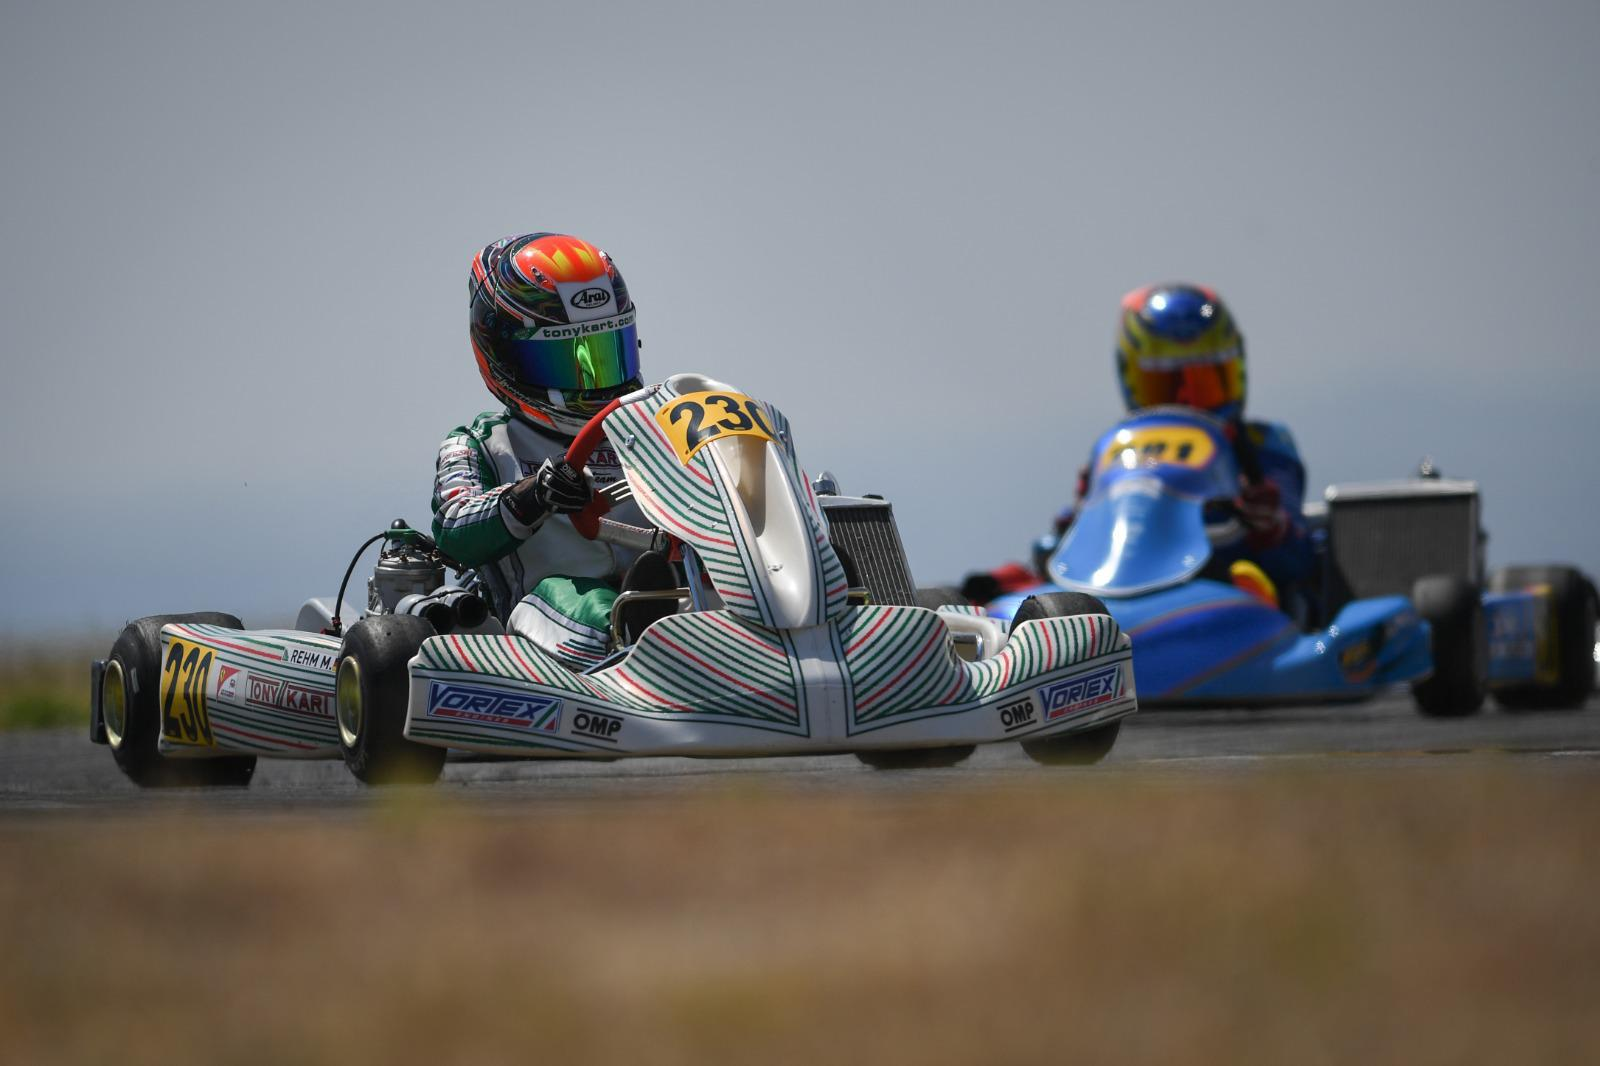 A weekend of comebacks for Rehm in the DKM opening round.